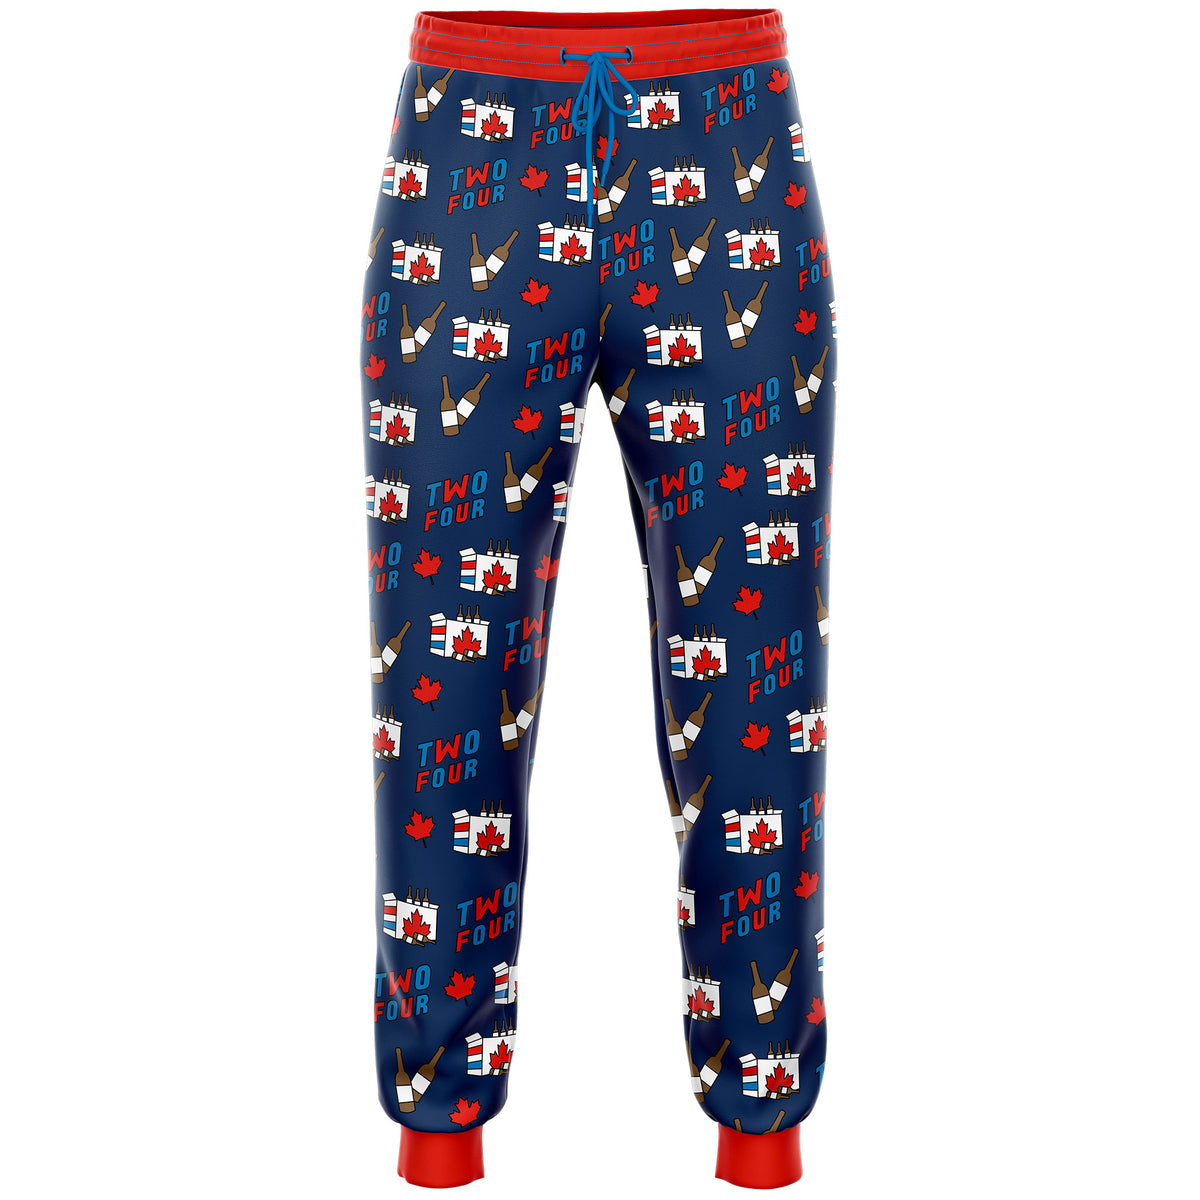 Canadian Two Four Beer Case Pajama Pants